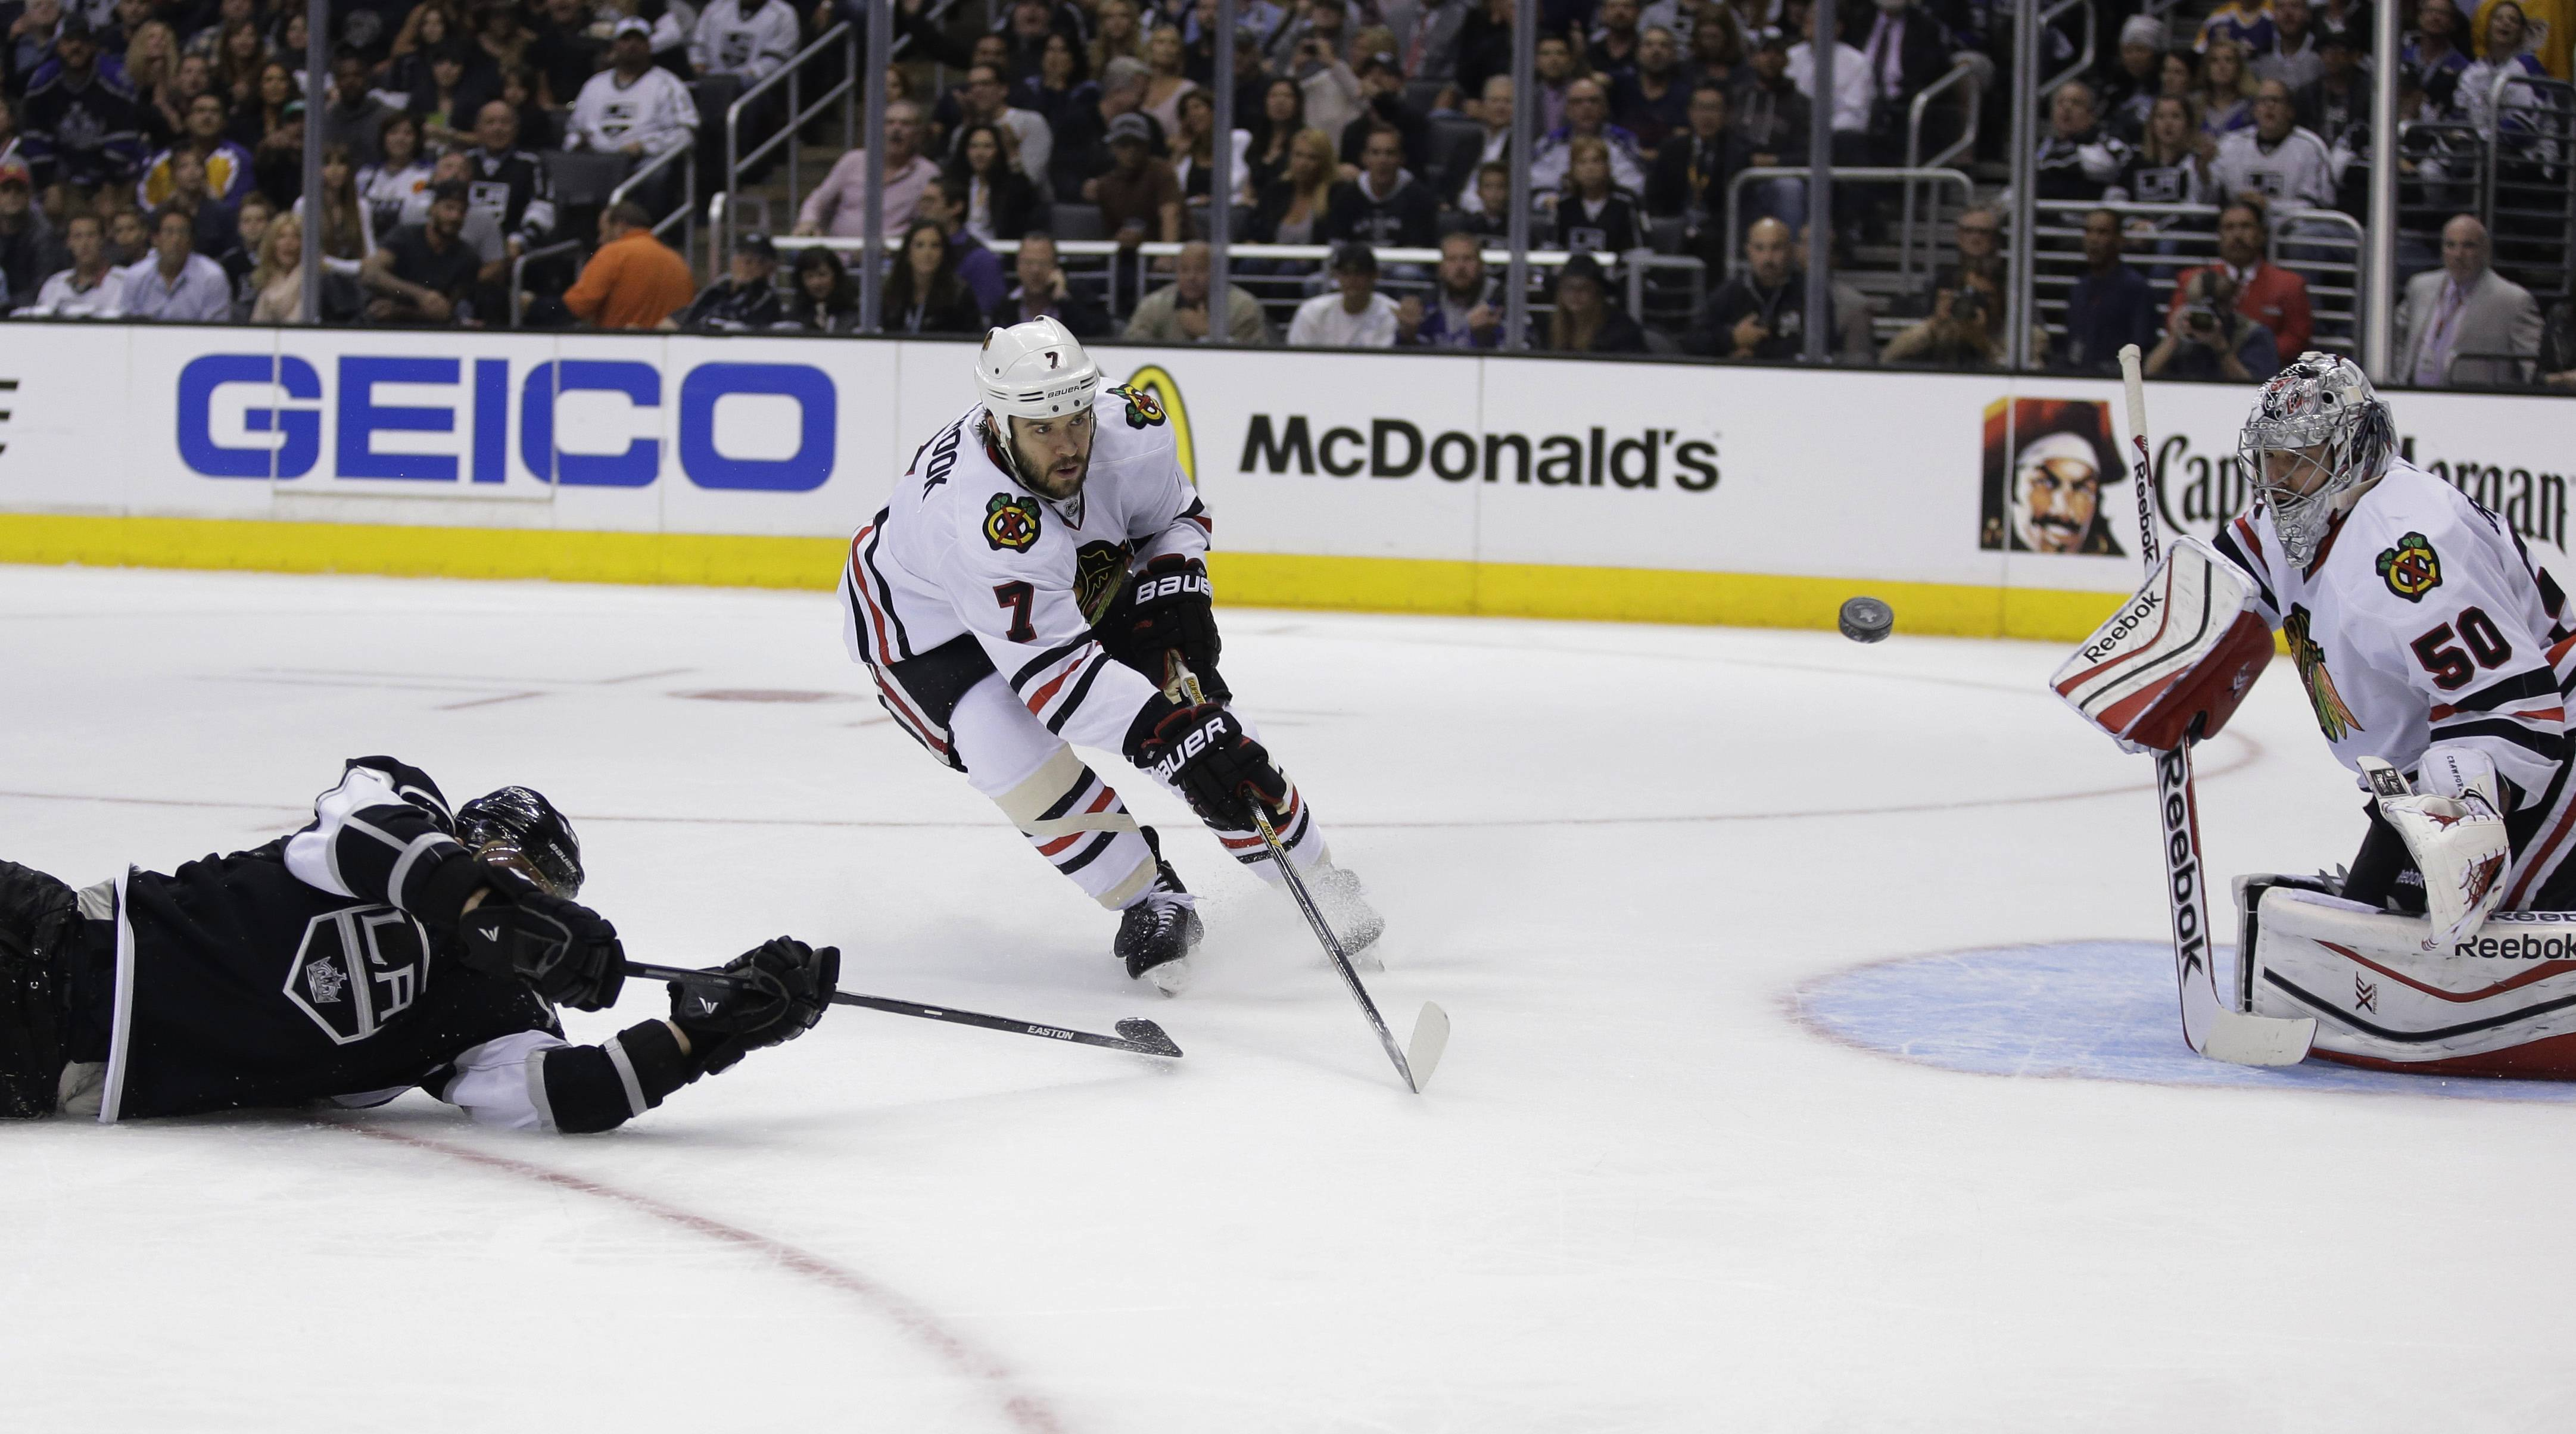 Chicago Blackhawks goalie Corey Crawford blocks a shot by Los Angeles Kings right wing Marian Gaborik, left, as defenseman Brent Seabrook wathes during the second period.